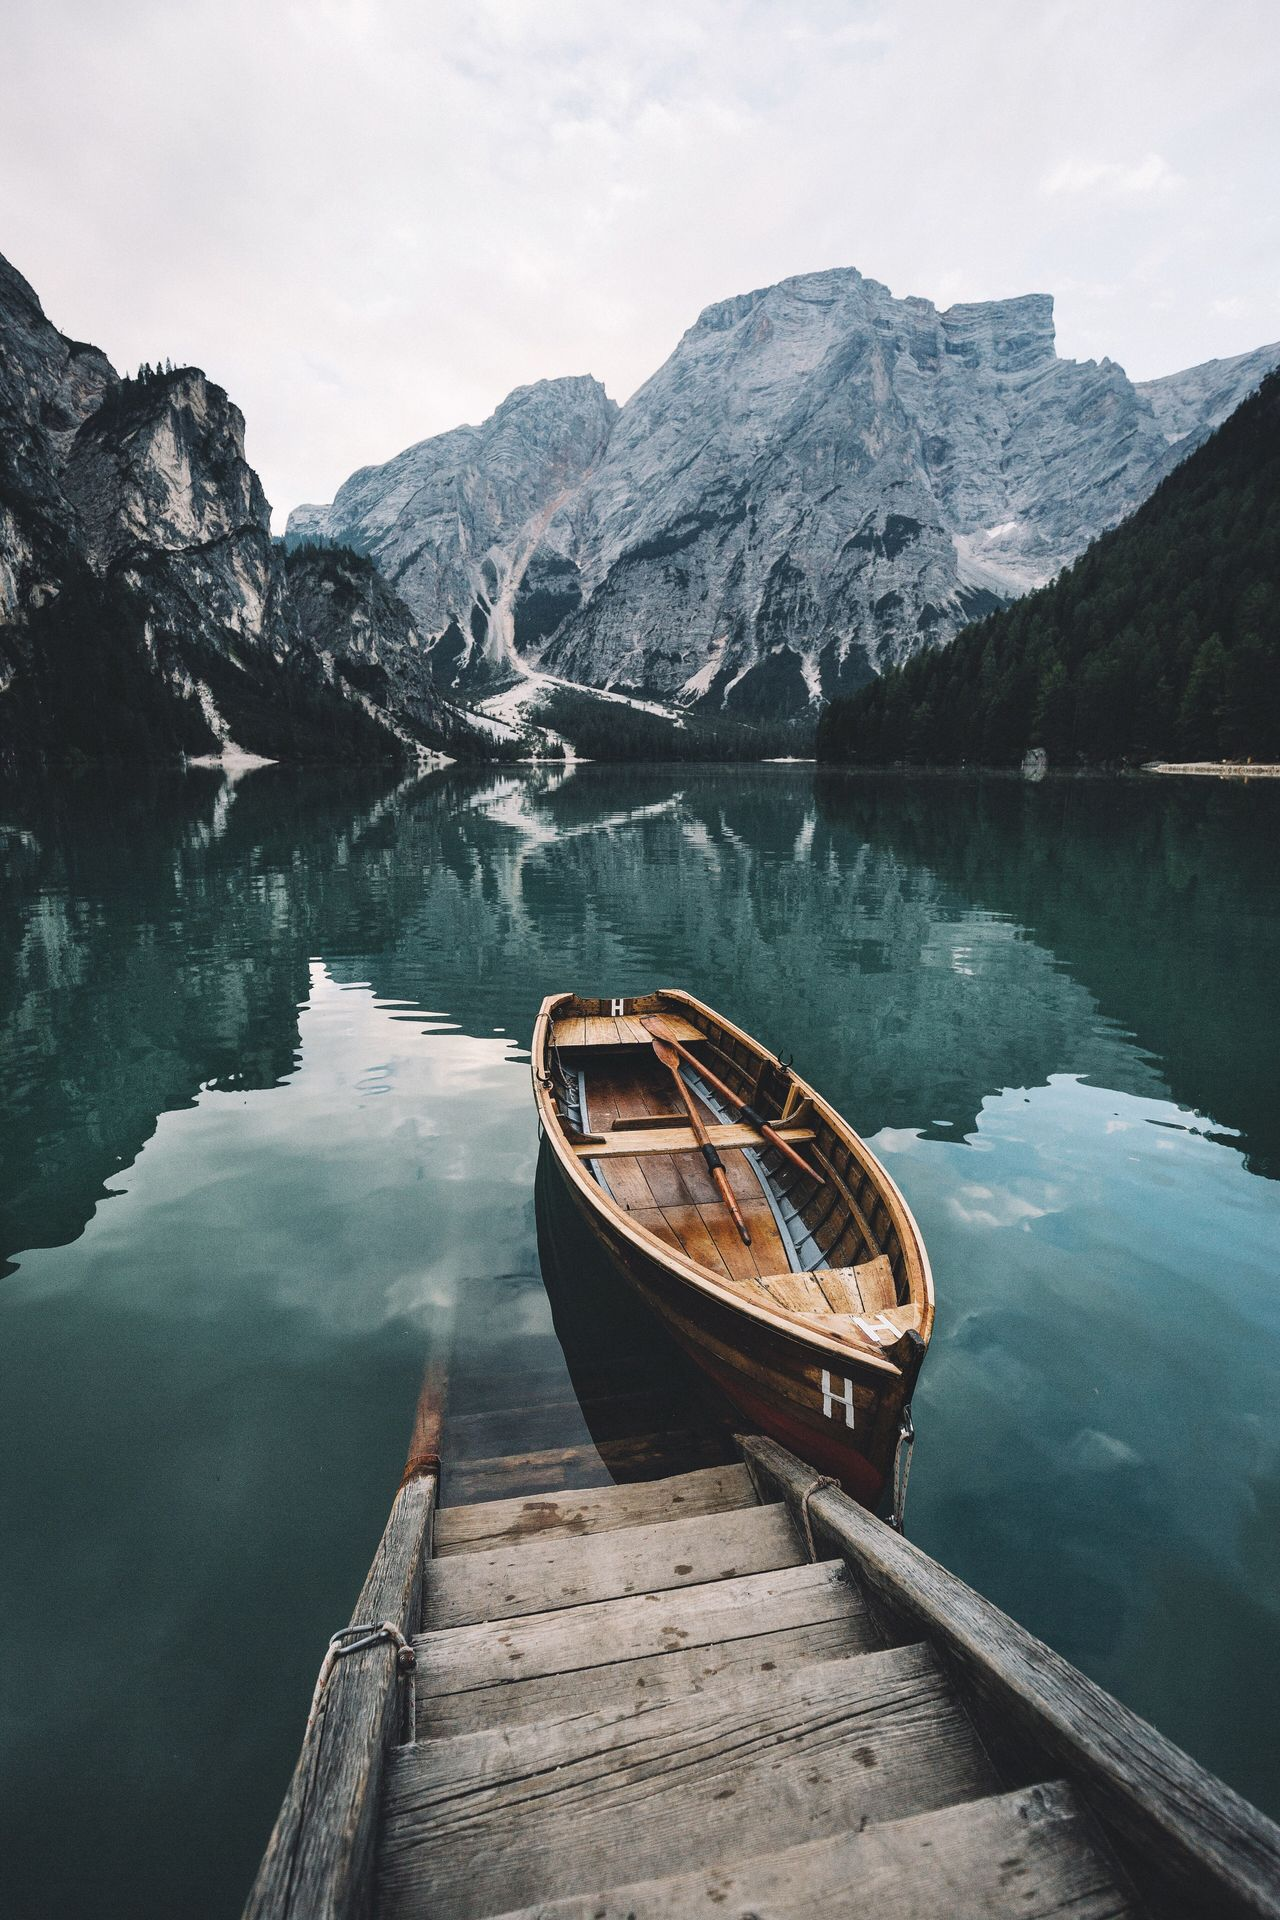 Explore more. Travel Itay Dolomites, Italy Outdoors Mountain Water Scenics Reflection Beauty In Nature Lake Nautical Vessel Nature Transportation Mode Of Transport Mountain Range Tranquility No People Day Sky